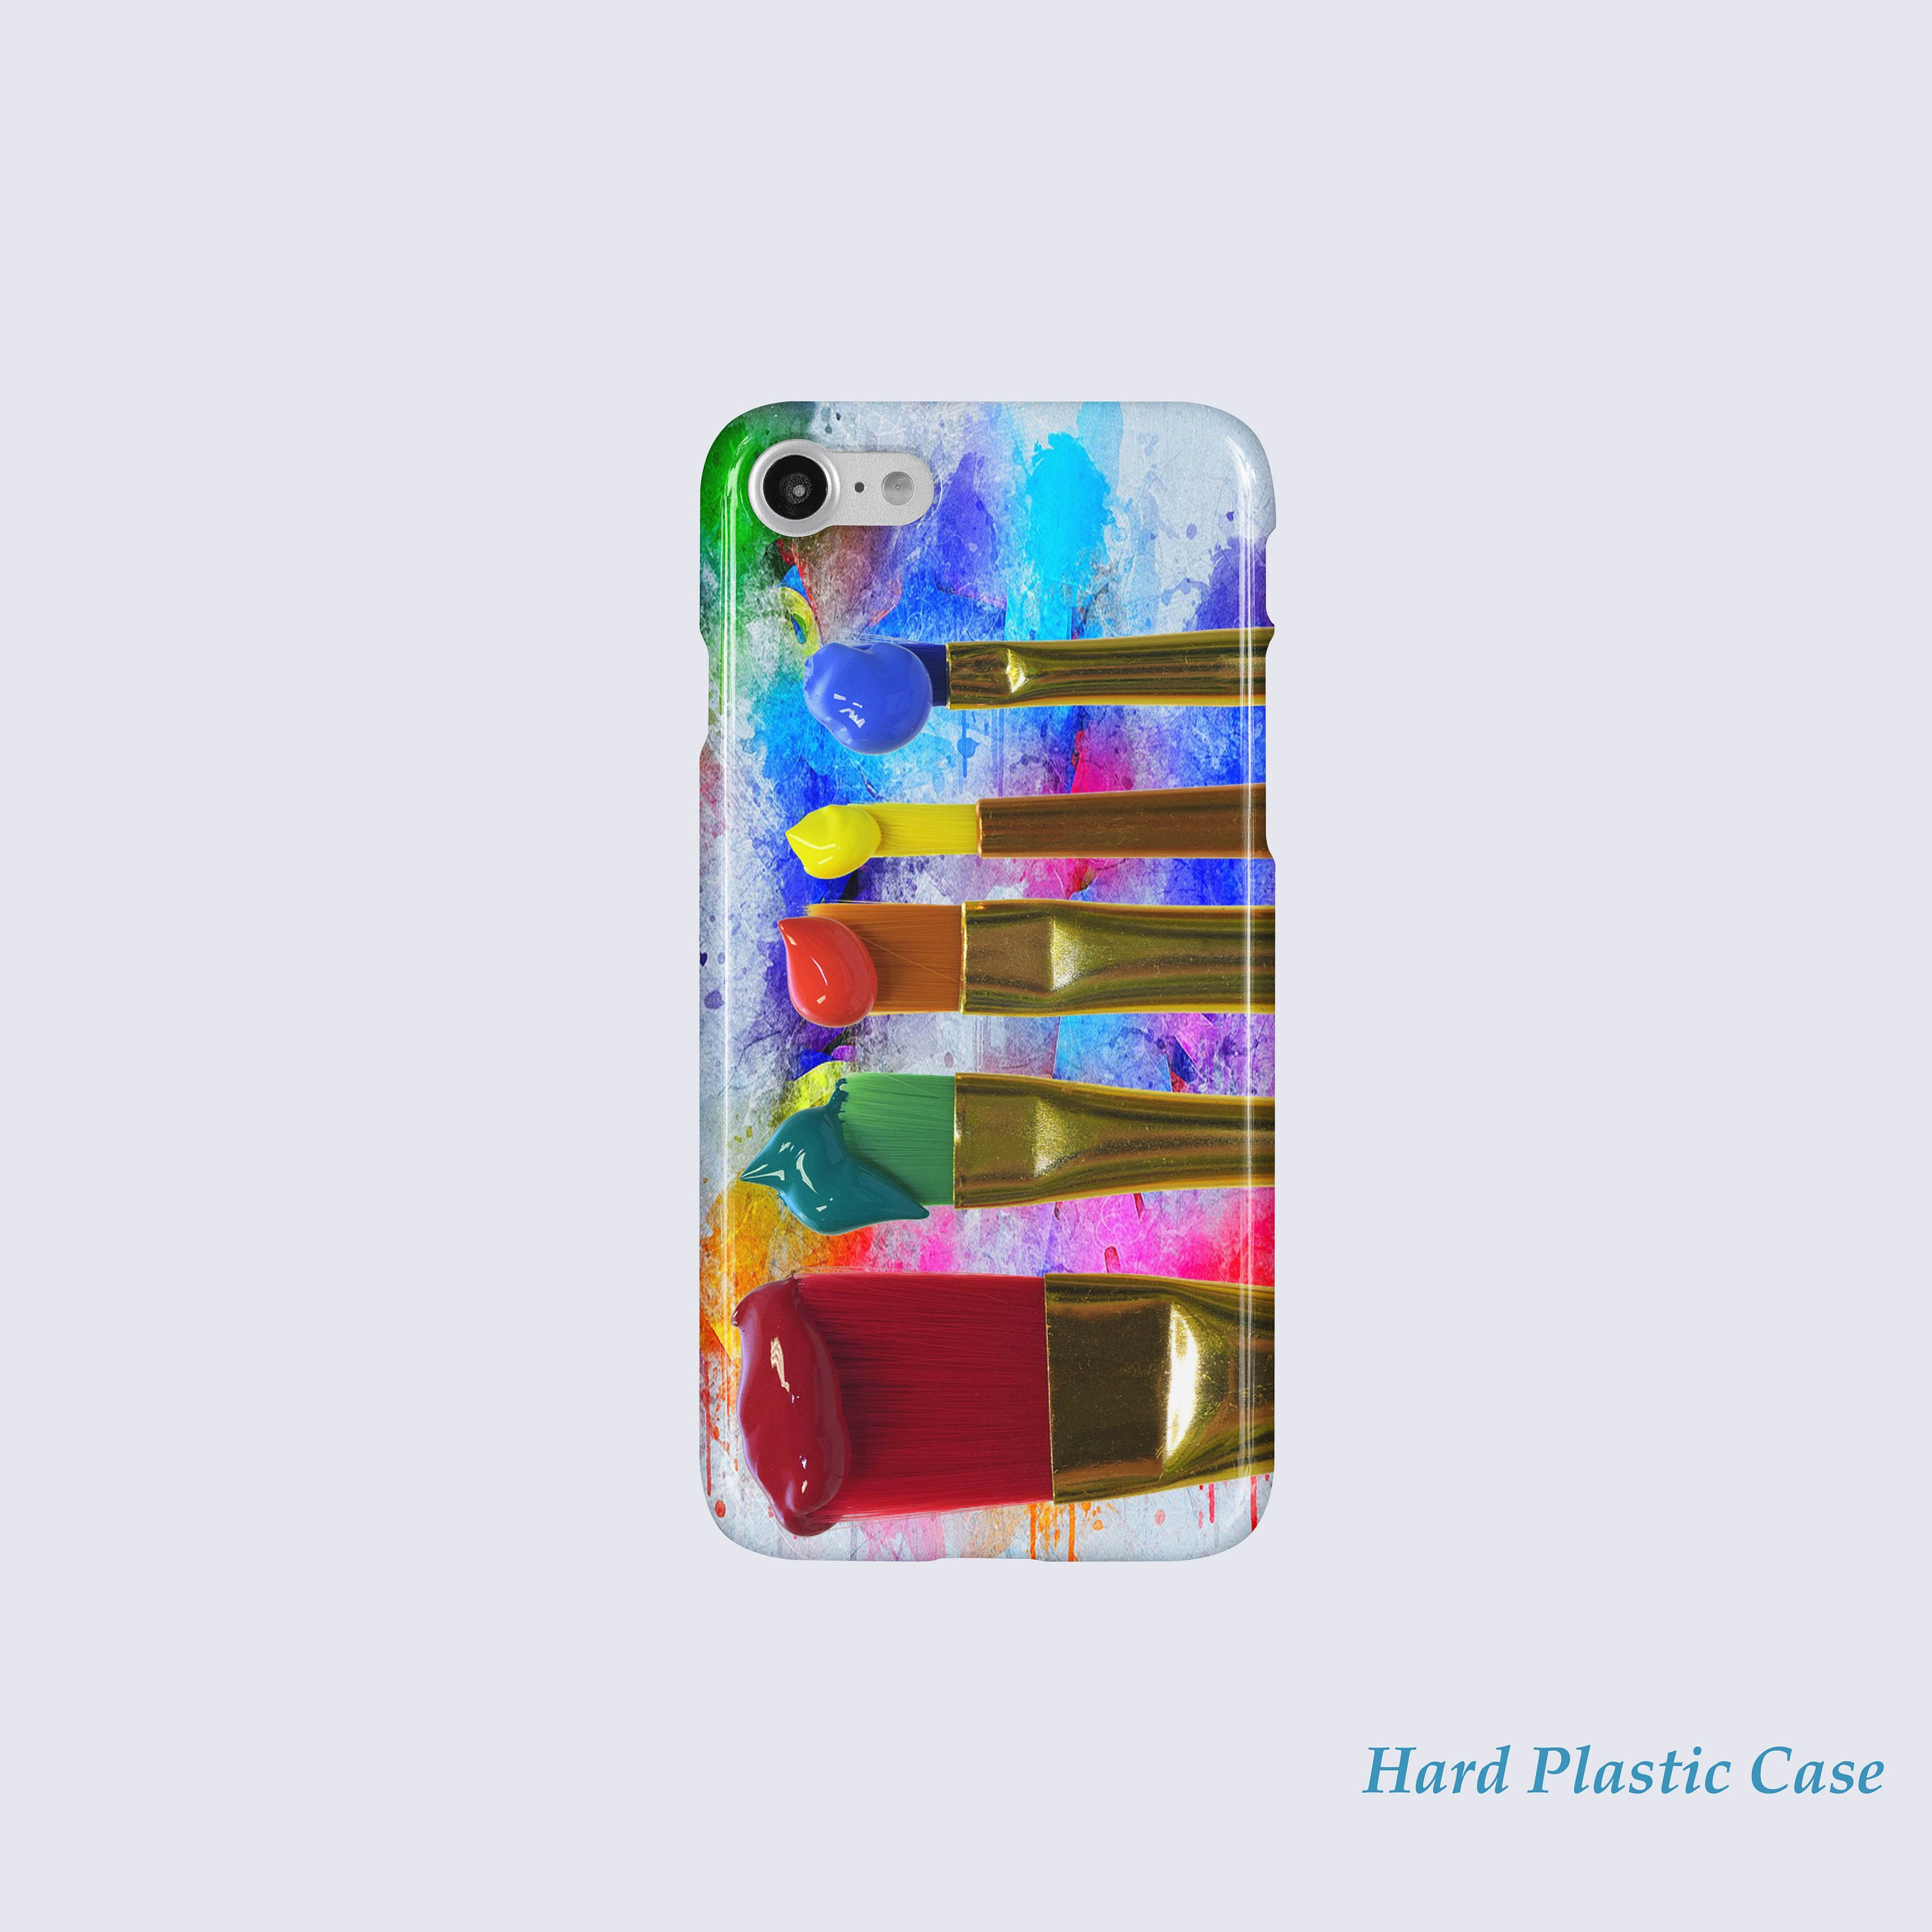 Artist Paint Brushes Phone case, Watercolor iPhone 7 Case, Watercolor  Palette iPhone 6 Case, Paint iPhone Plus Case, Paint iPhone SE Case